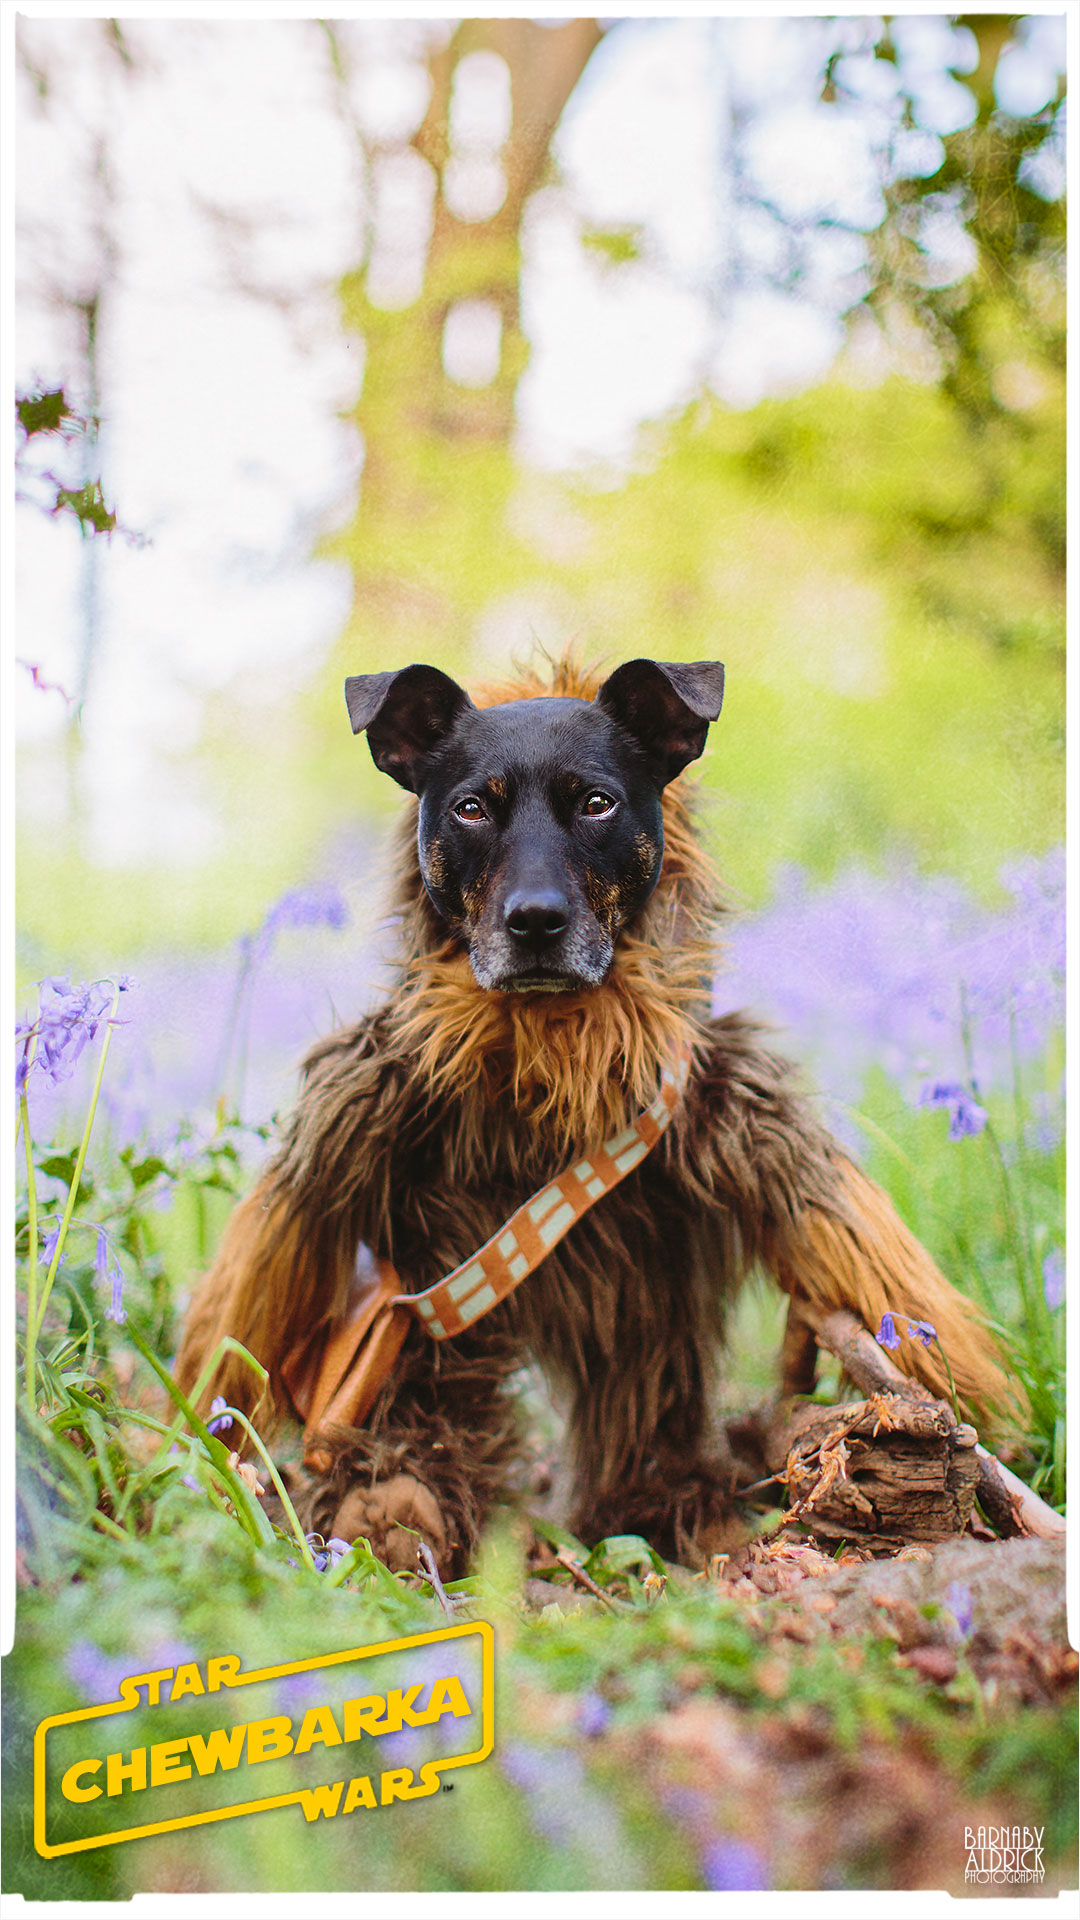 Star Wars Chewbacca Dog Pet Costume, Star Wars Dog Outfit, Star Wars Chewie costume, Star wars Chewbacca pet outfit